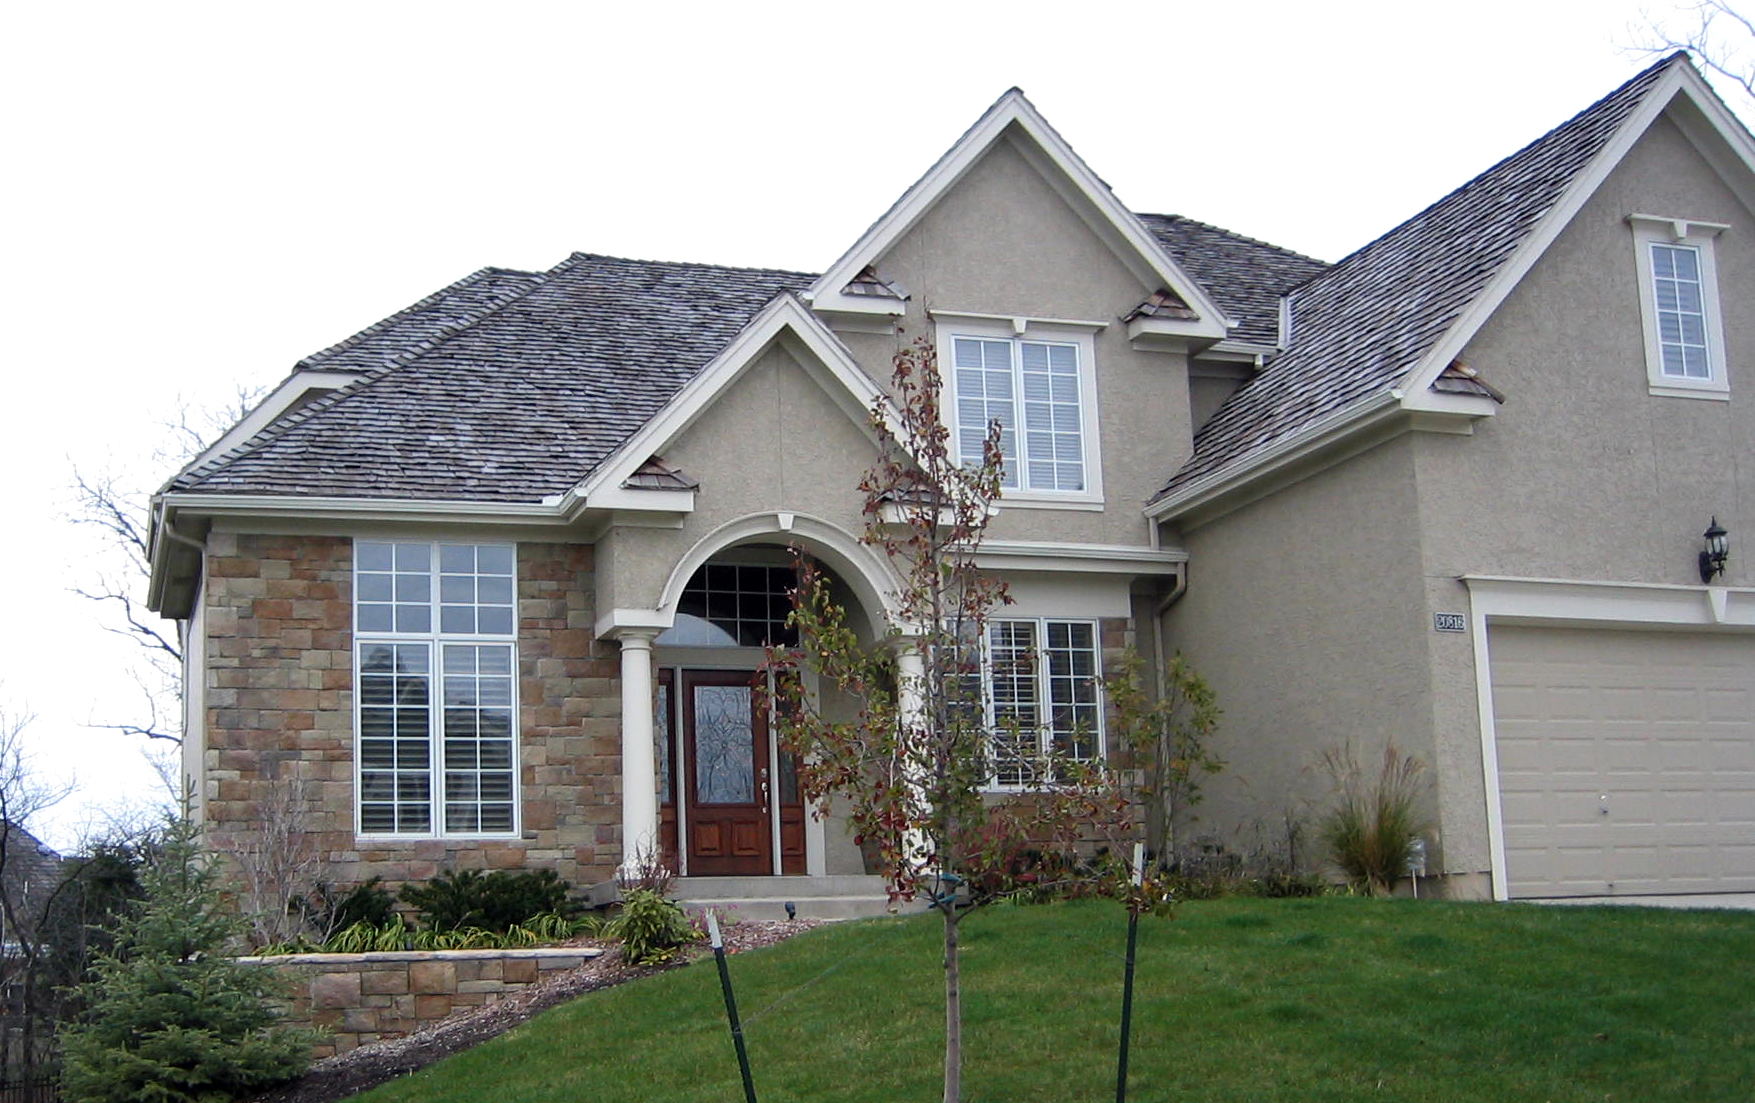 Design Stucco And Stone Homes creating an ancient roman villa look with stone cladding and if you strive for authenticity then using off white stucco walls canyon red clay roof shingles will do the tr